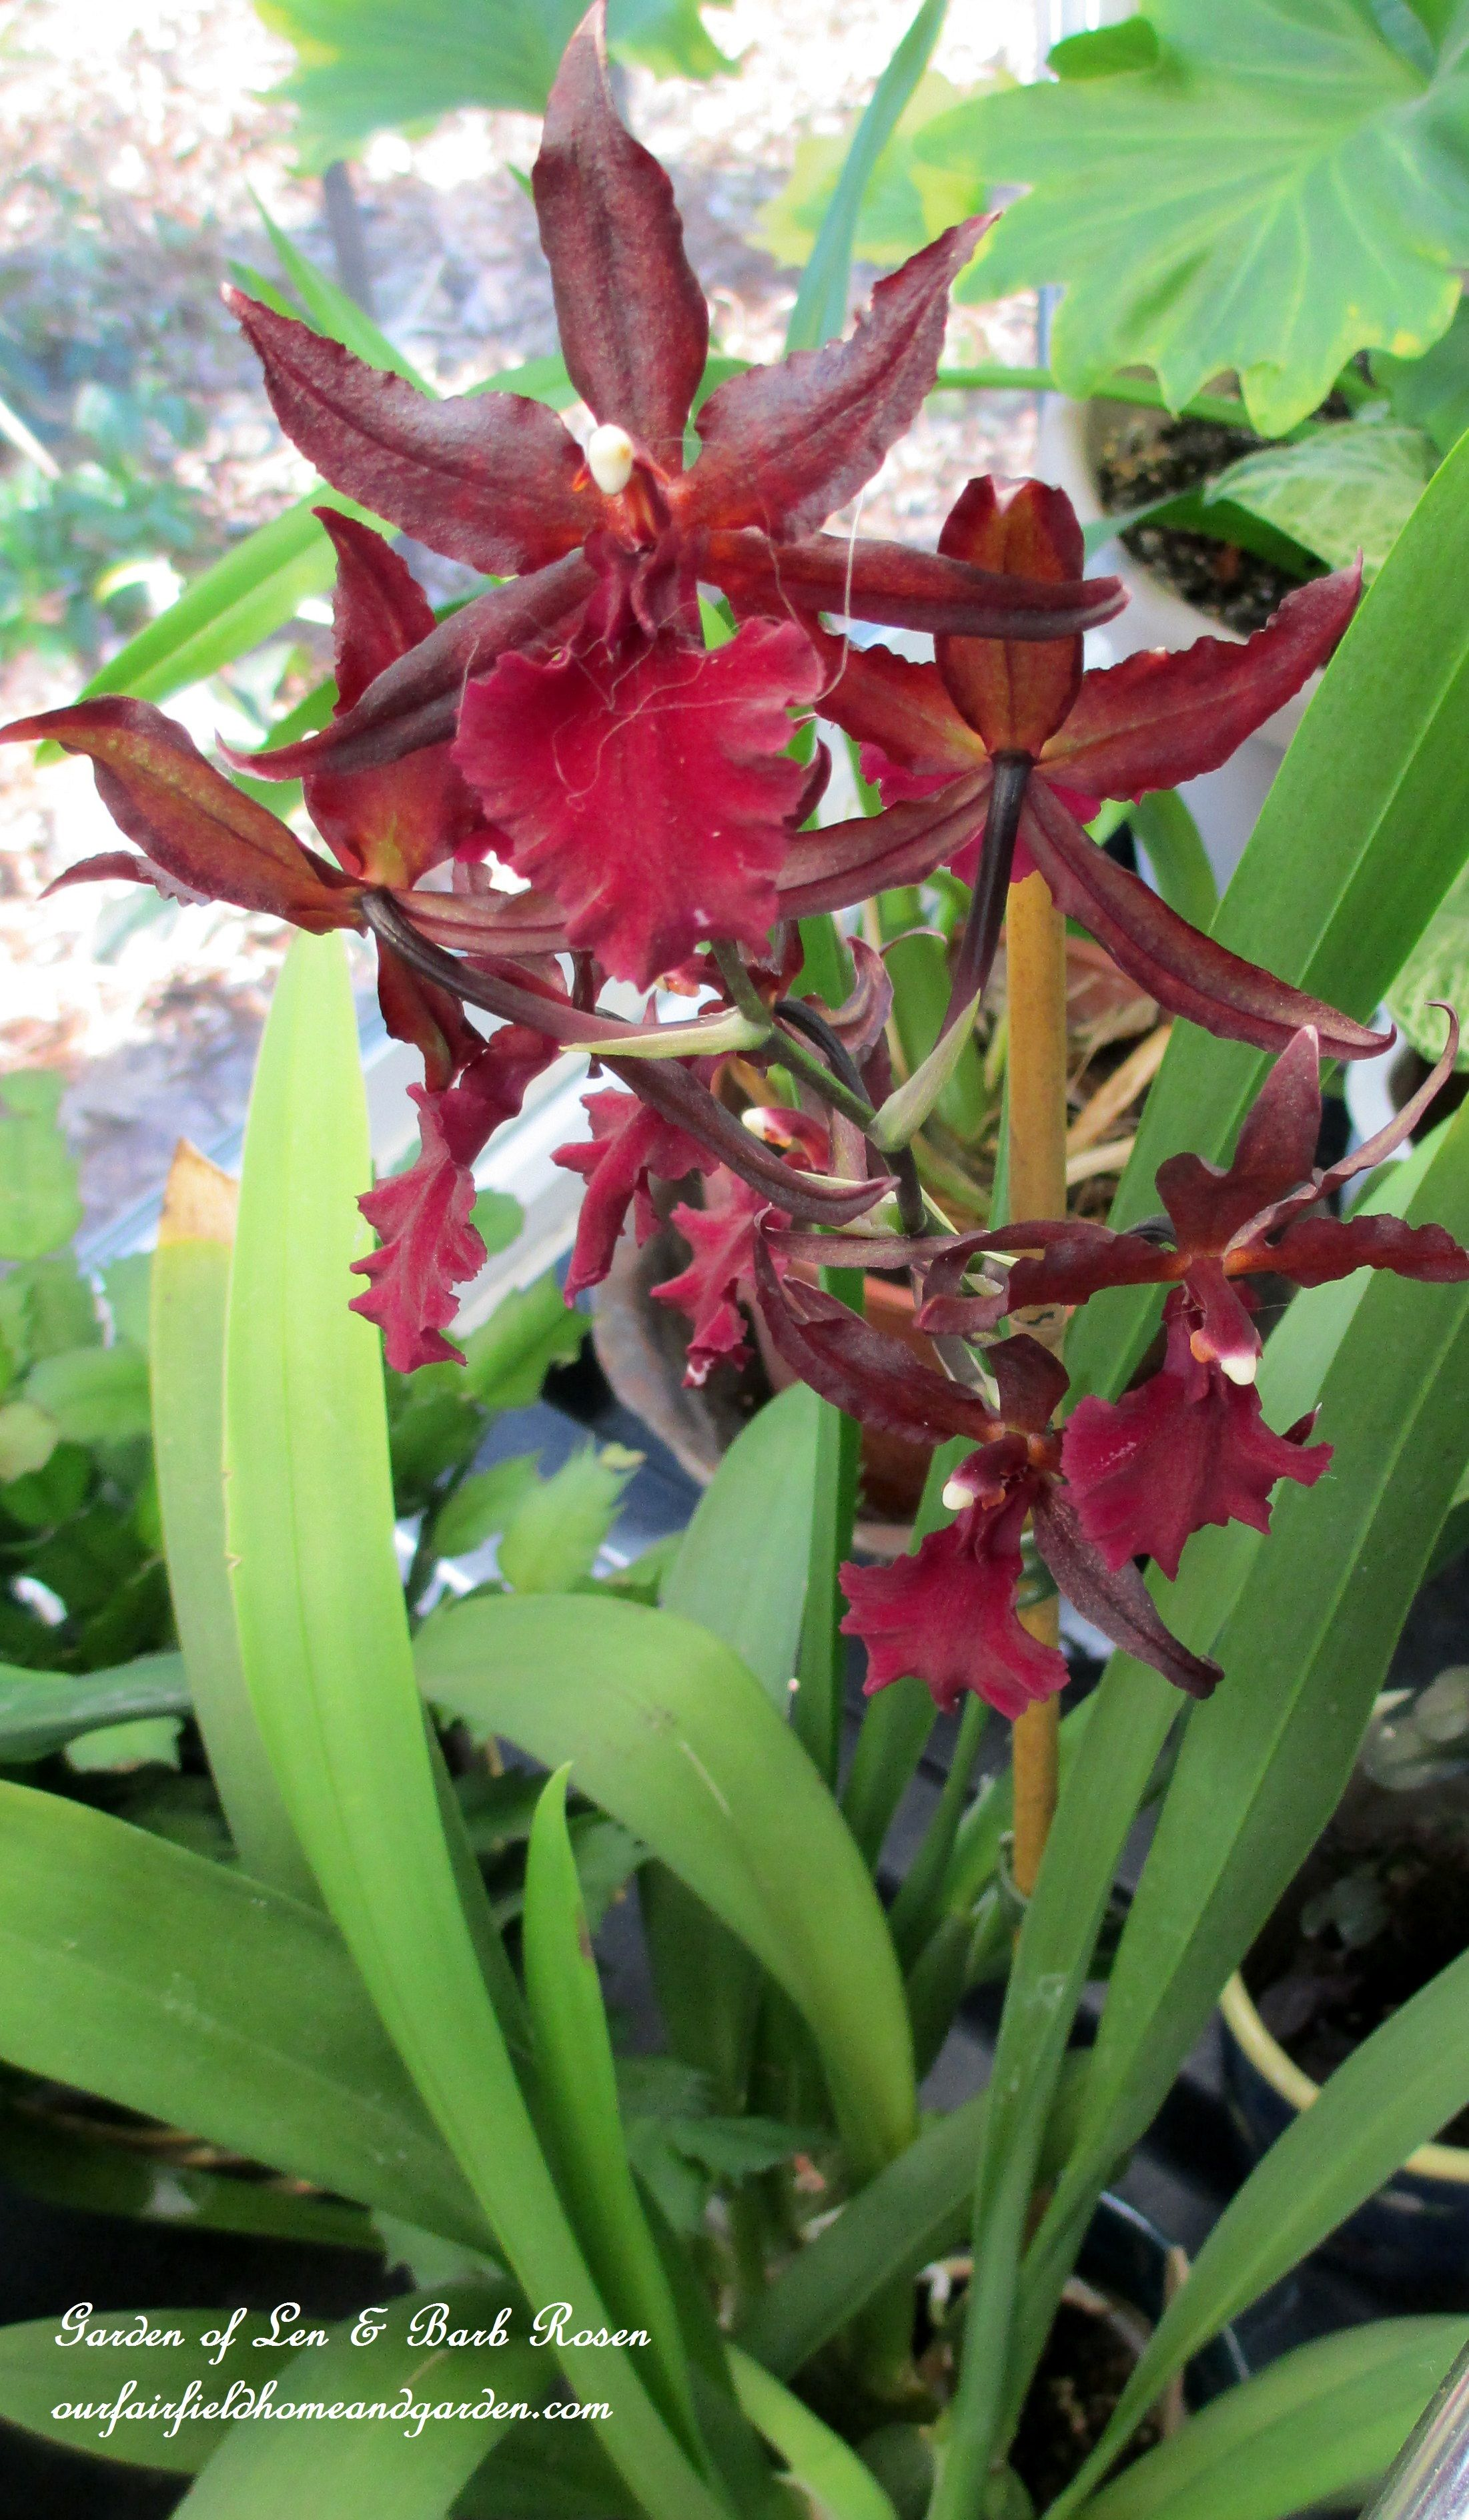 Img our fairfield home u garden beautiful orchids